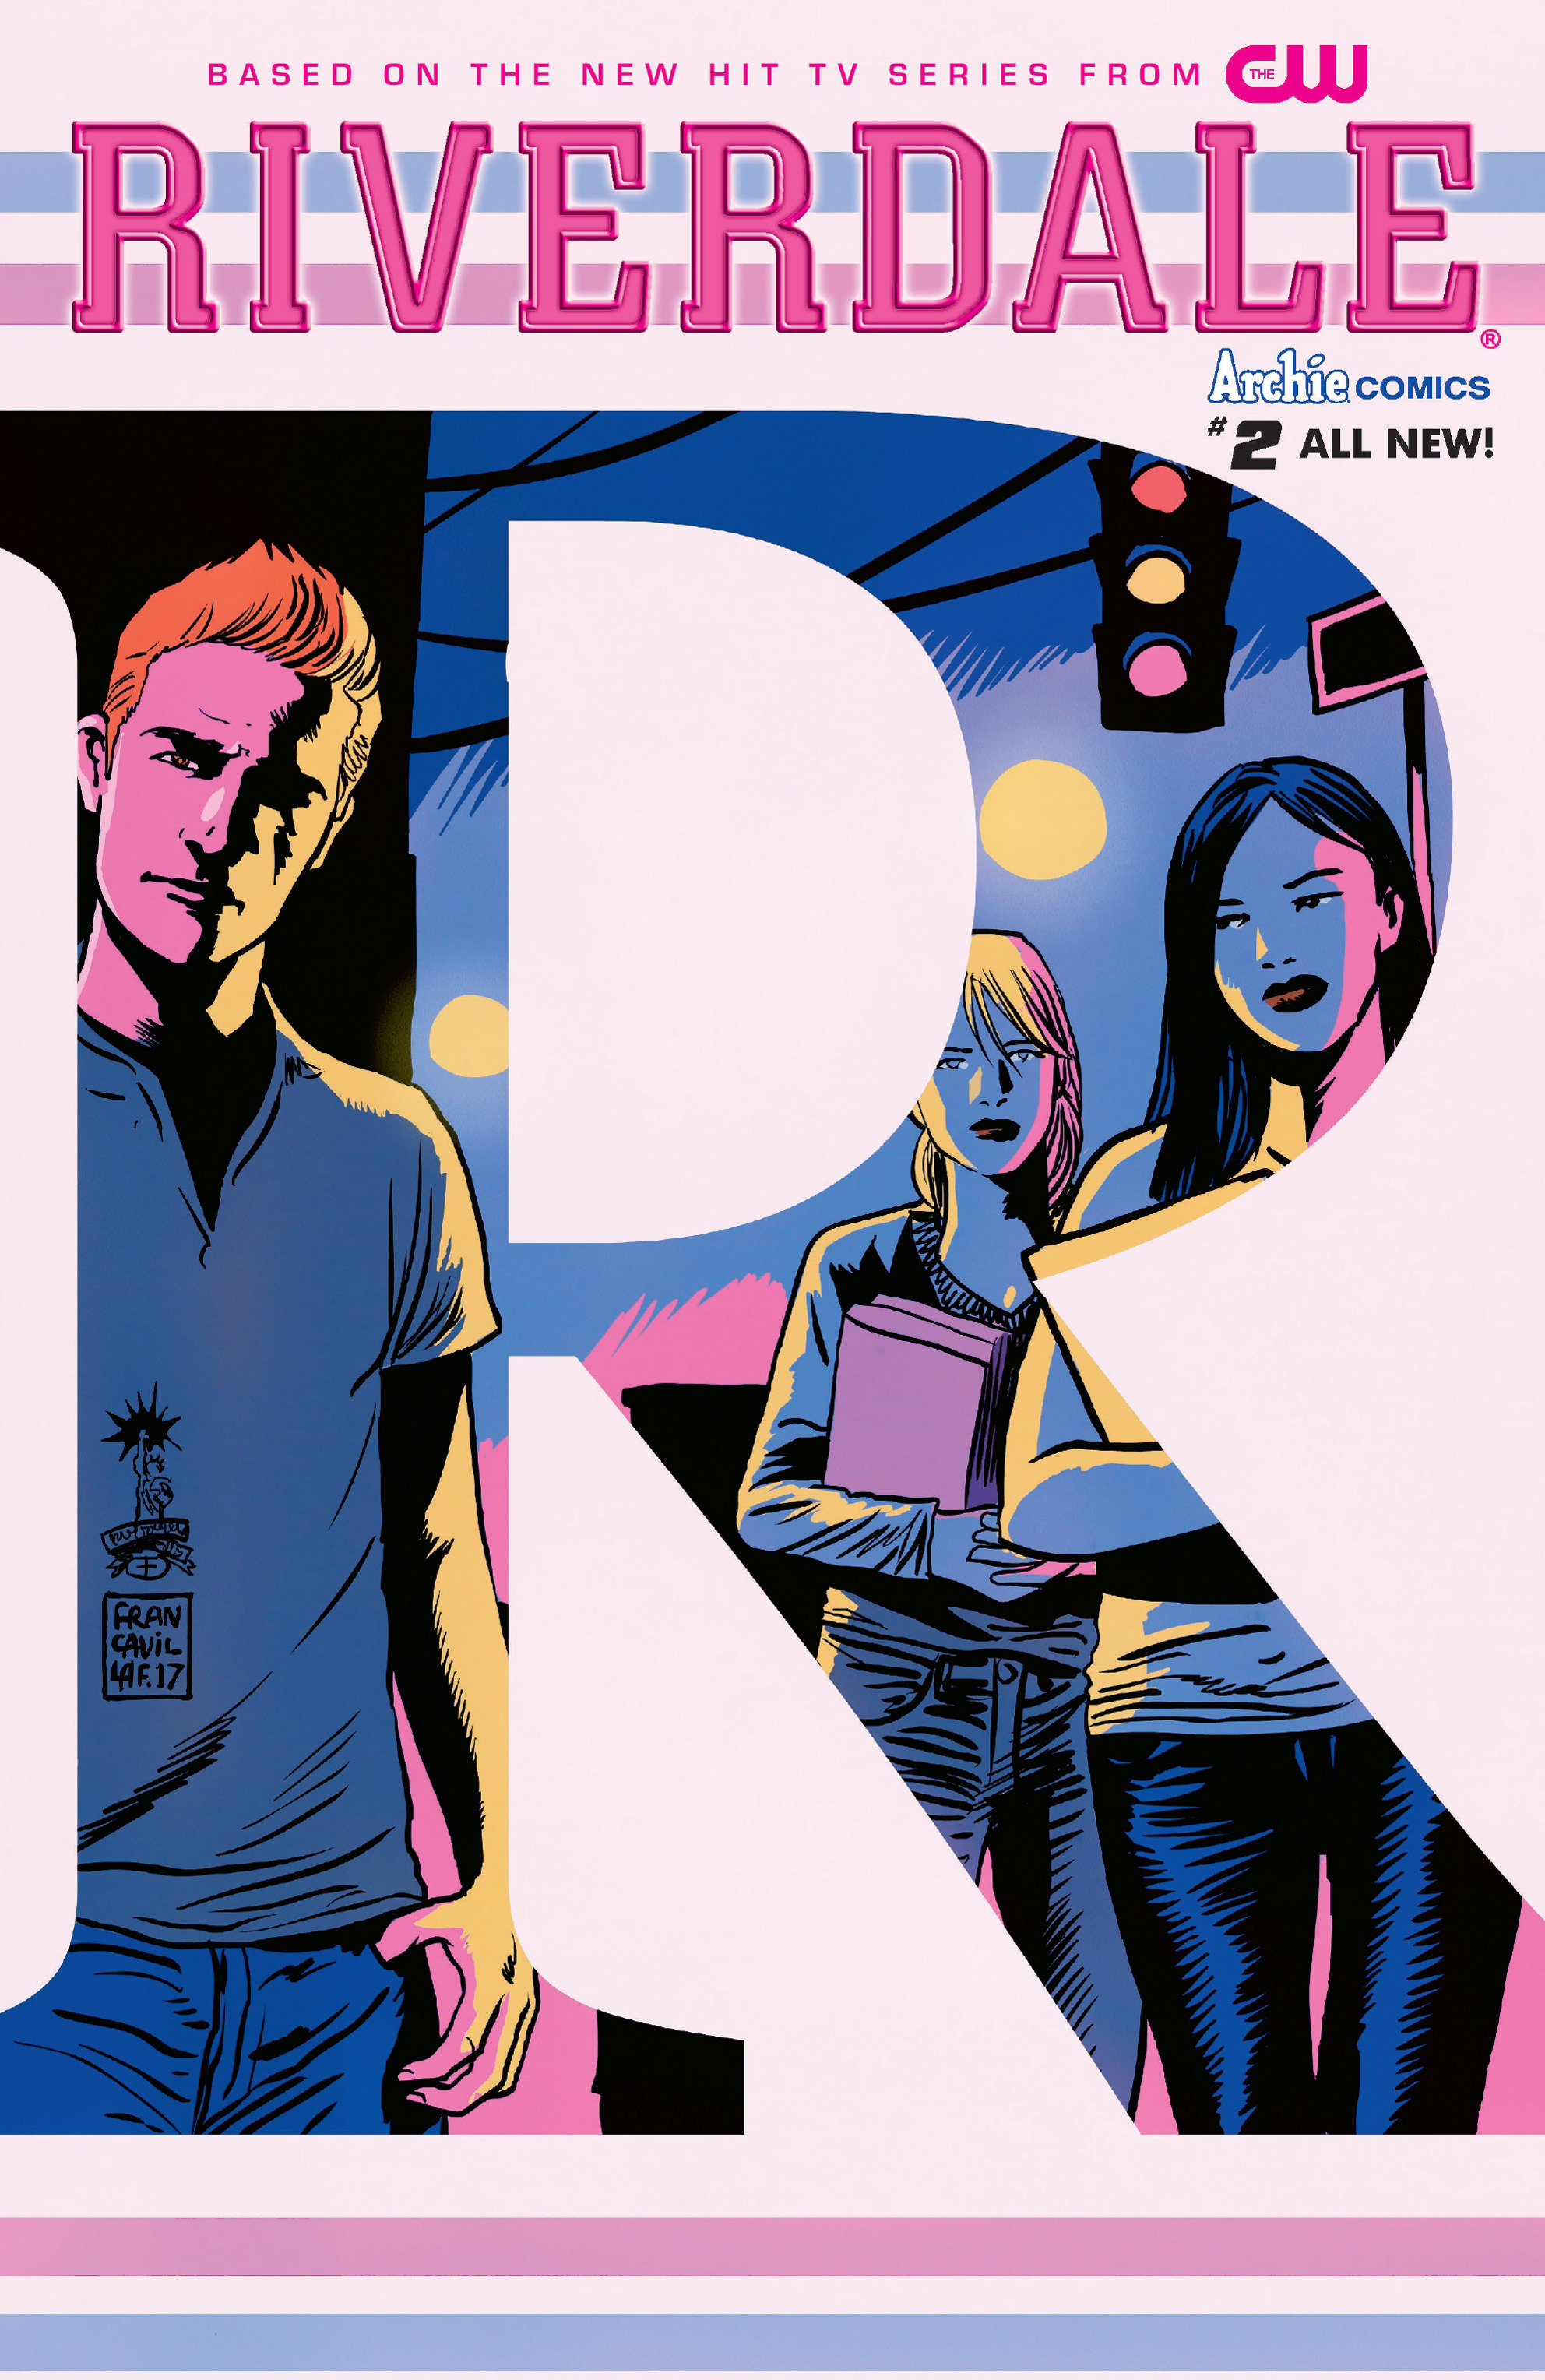 Read online Riverdale comic -  Issue #2 - 1